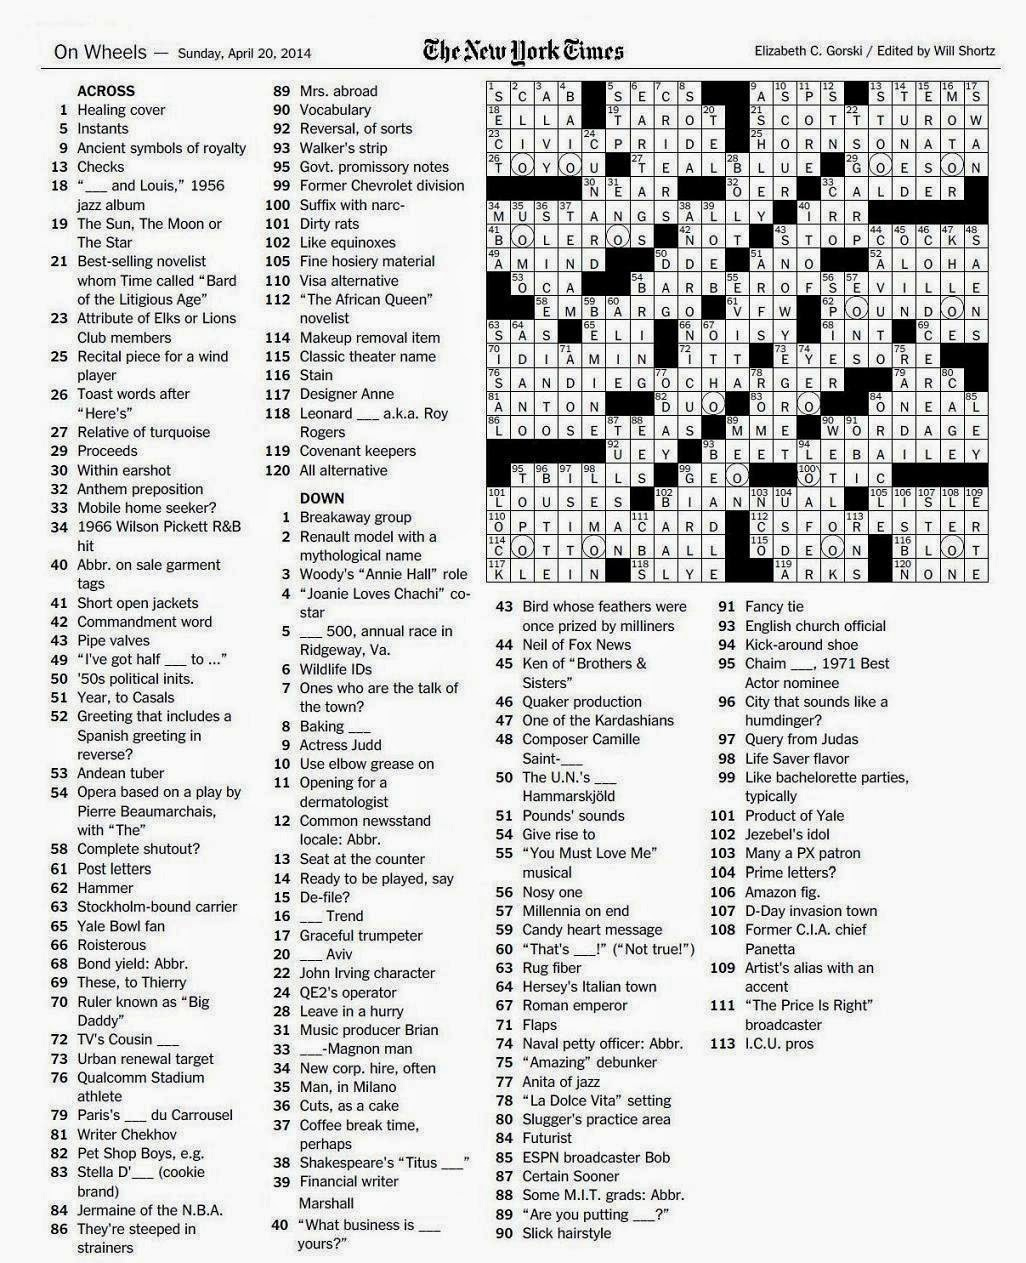 The New York Times Crossword In Gothic: April 2014 - La Times Printable Crossword 2014